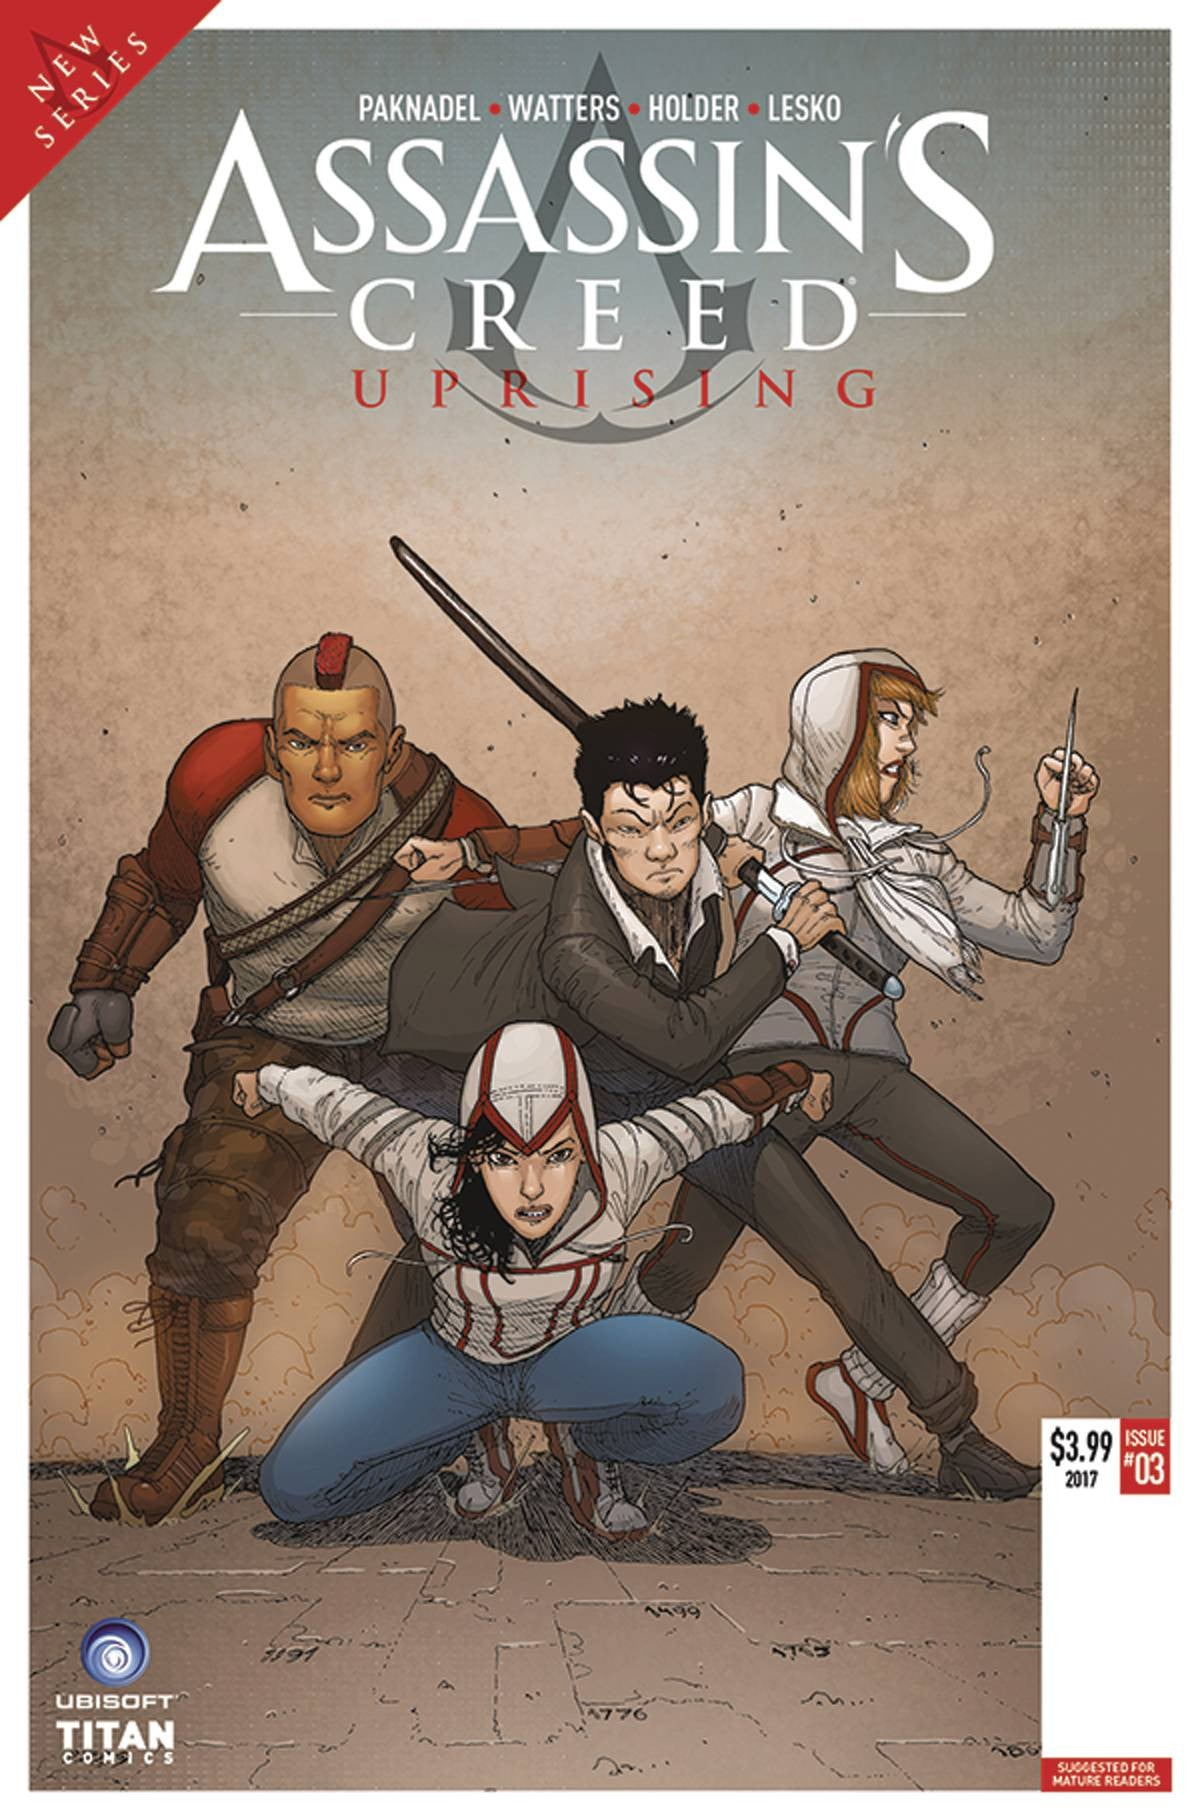 ASSASSINS CREED UPRISING #3 CVR A ARAUJO